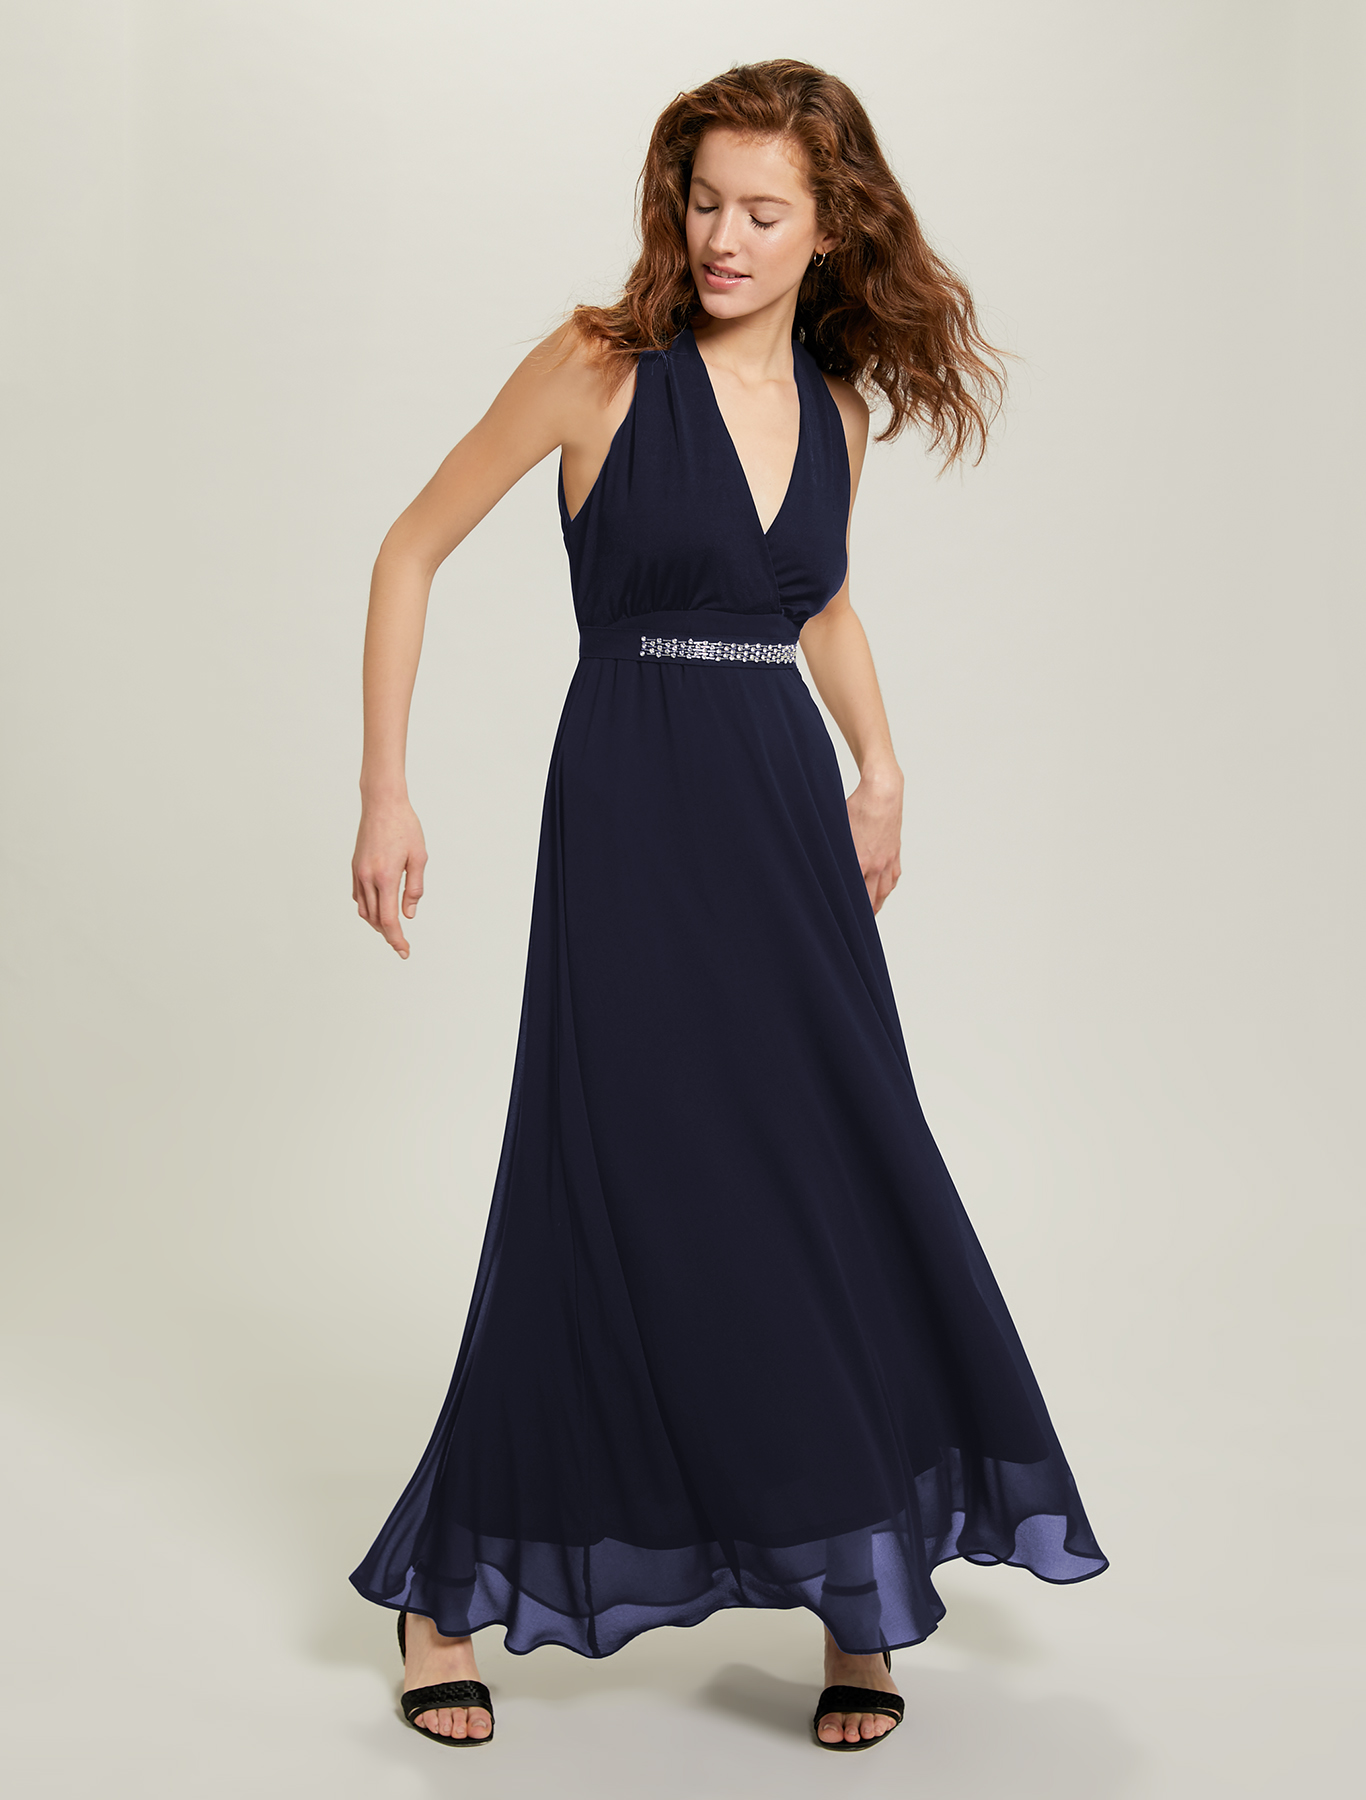 Georgette and jersey dress - navy blue - pennyblack